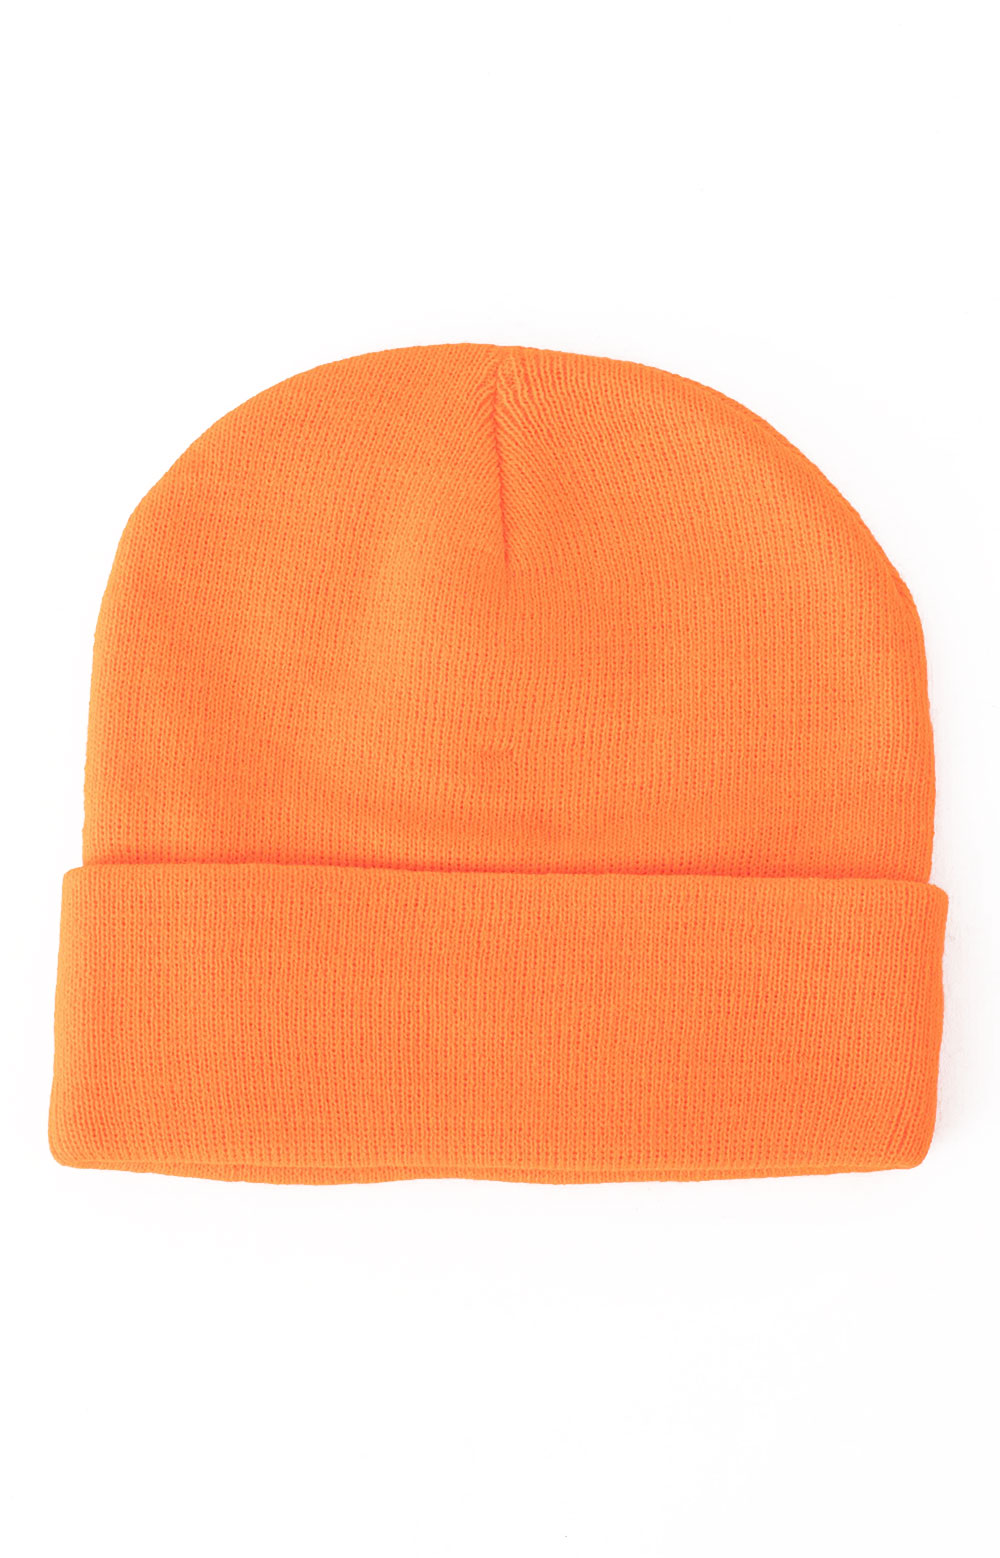 (5783) Rothco Deluxe Fine Knit Watch Cap - Safety Orange